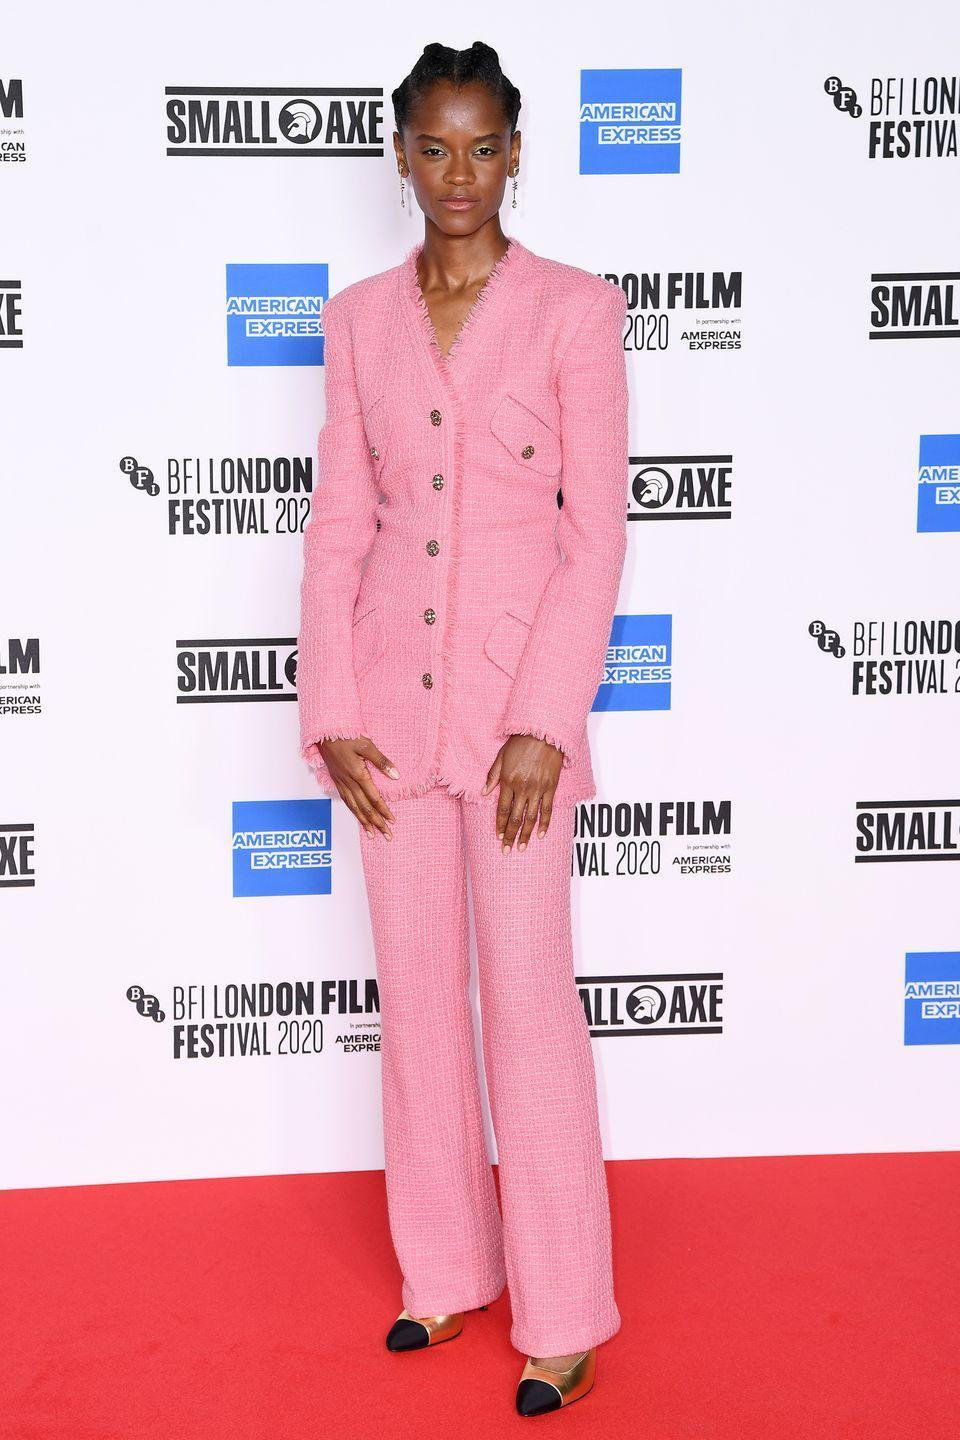 <p><strong>7 October </strong>Letitia Wright made a statement on the red carpet in a pink Chanel suit and Jessica McCormack earrings, for the Mangrove premiere during the 64th BFI London Film Festival. </p>